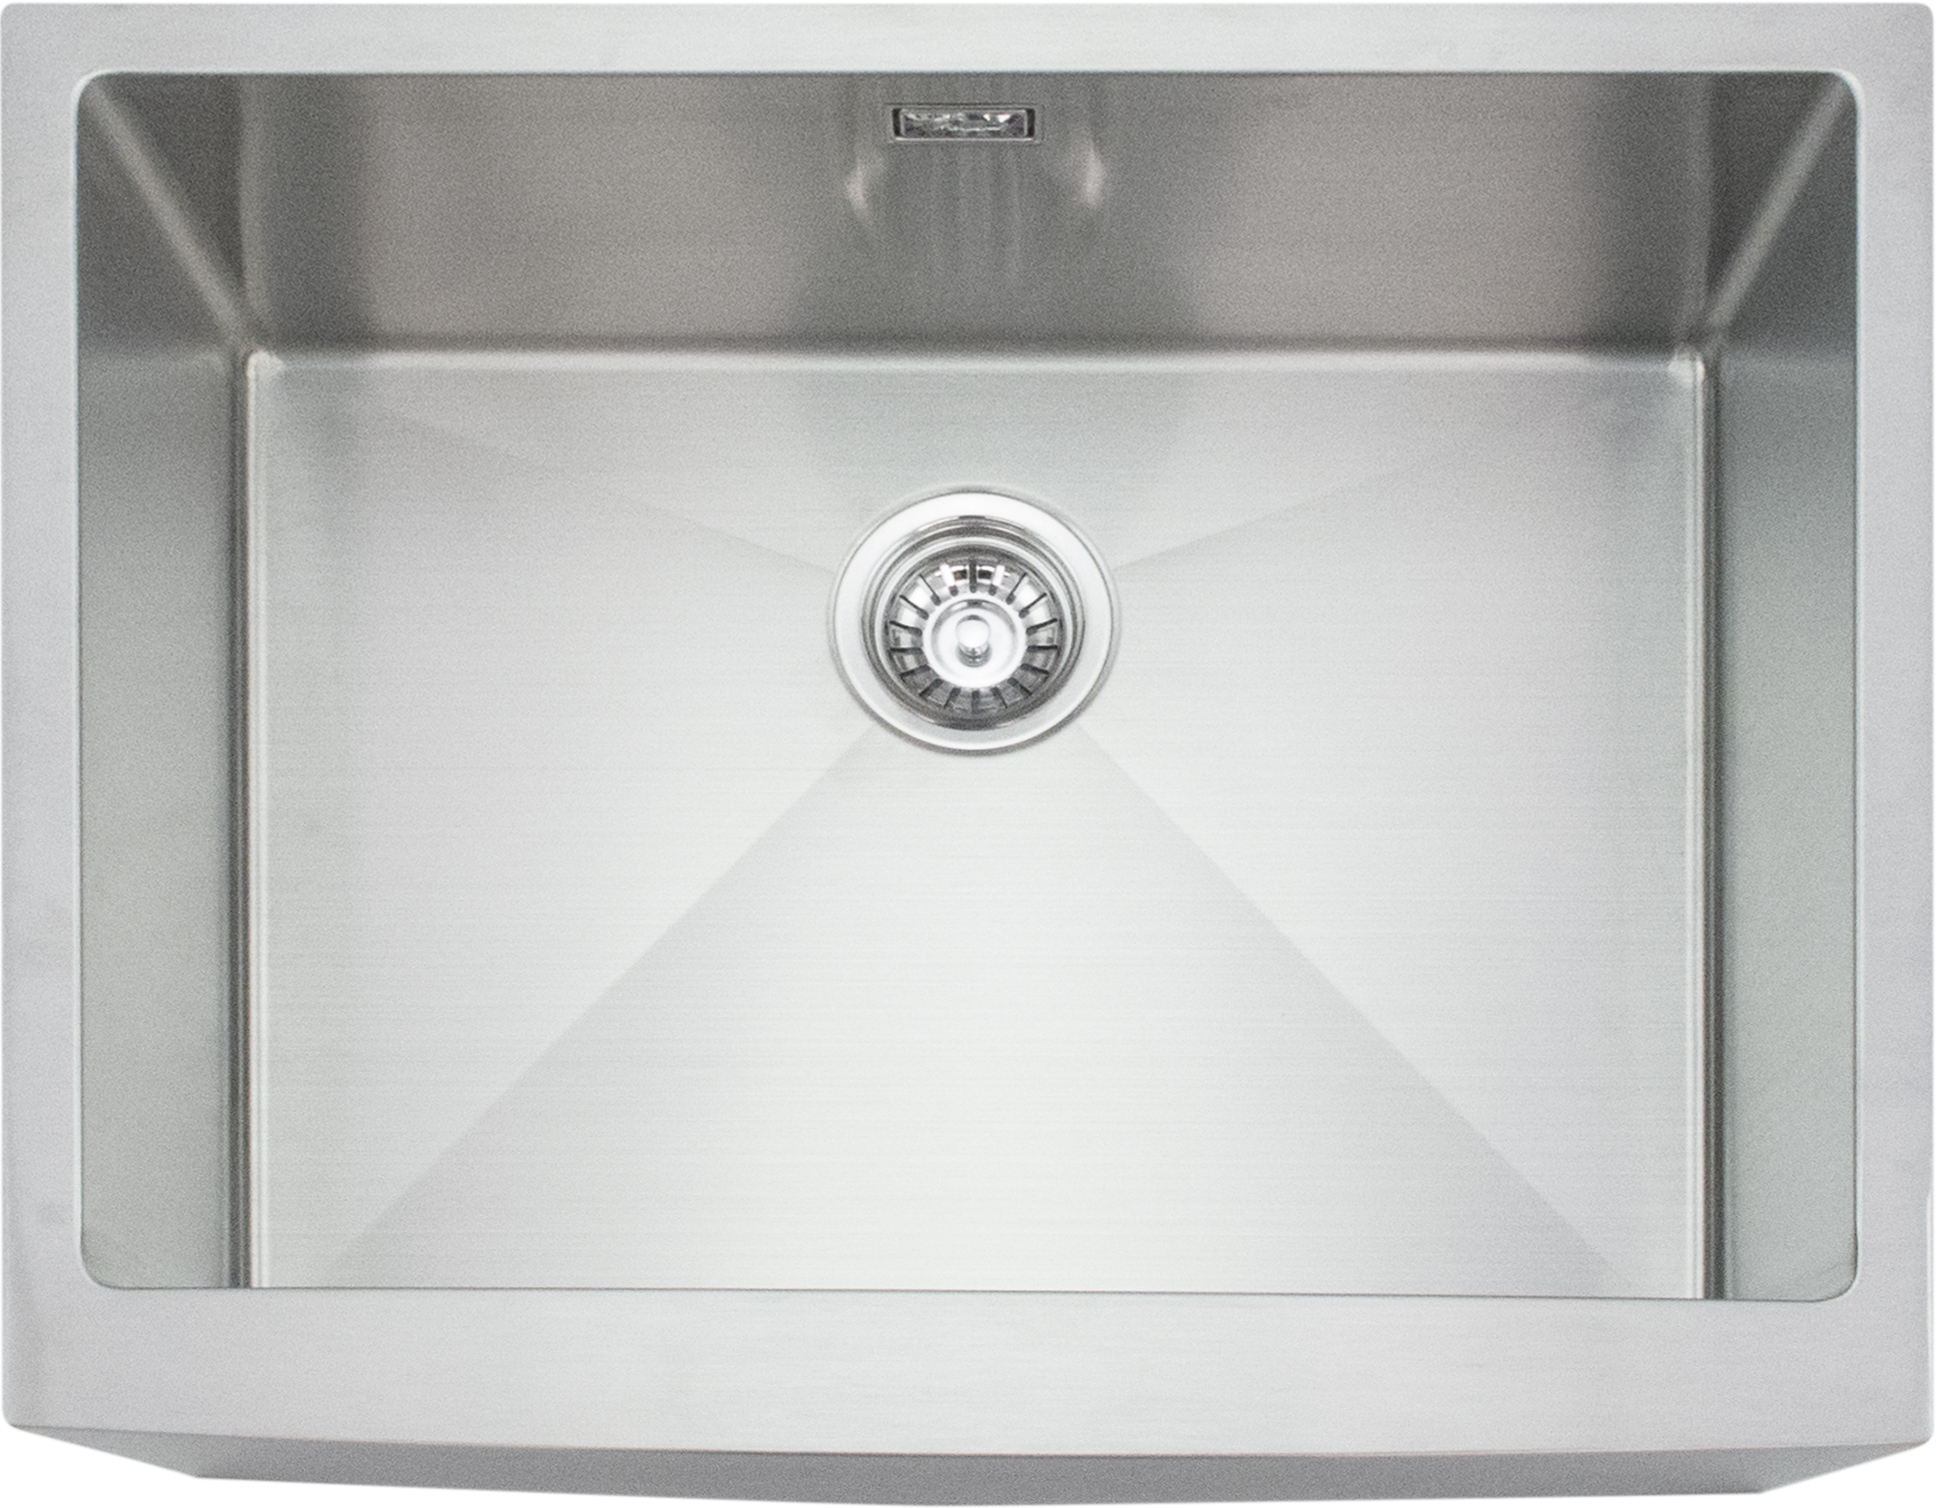 cream kitchen sinks kitchen sinks cad drawings best house 3010